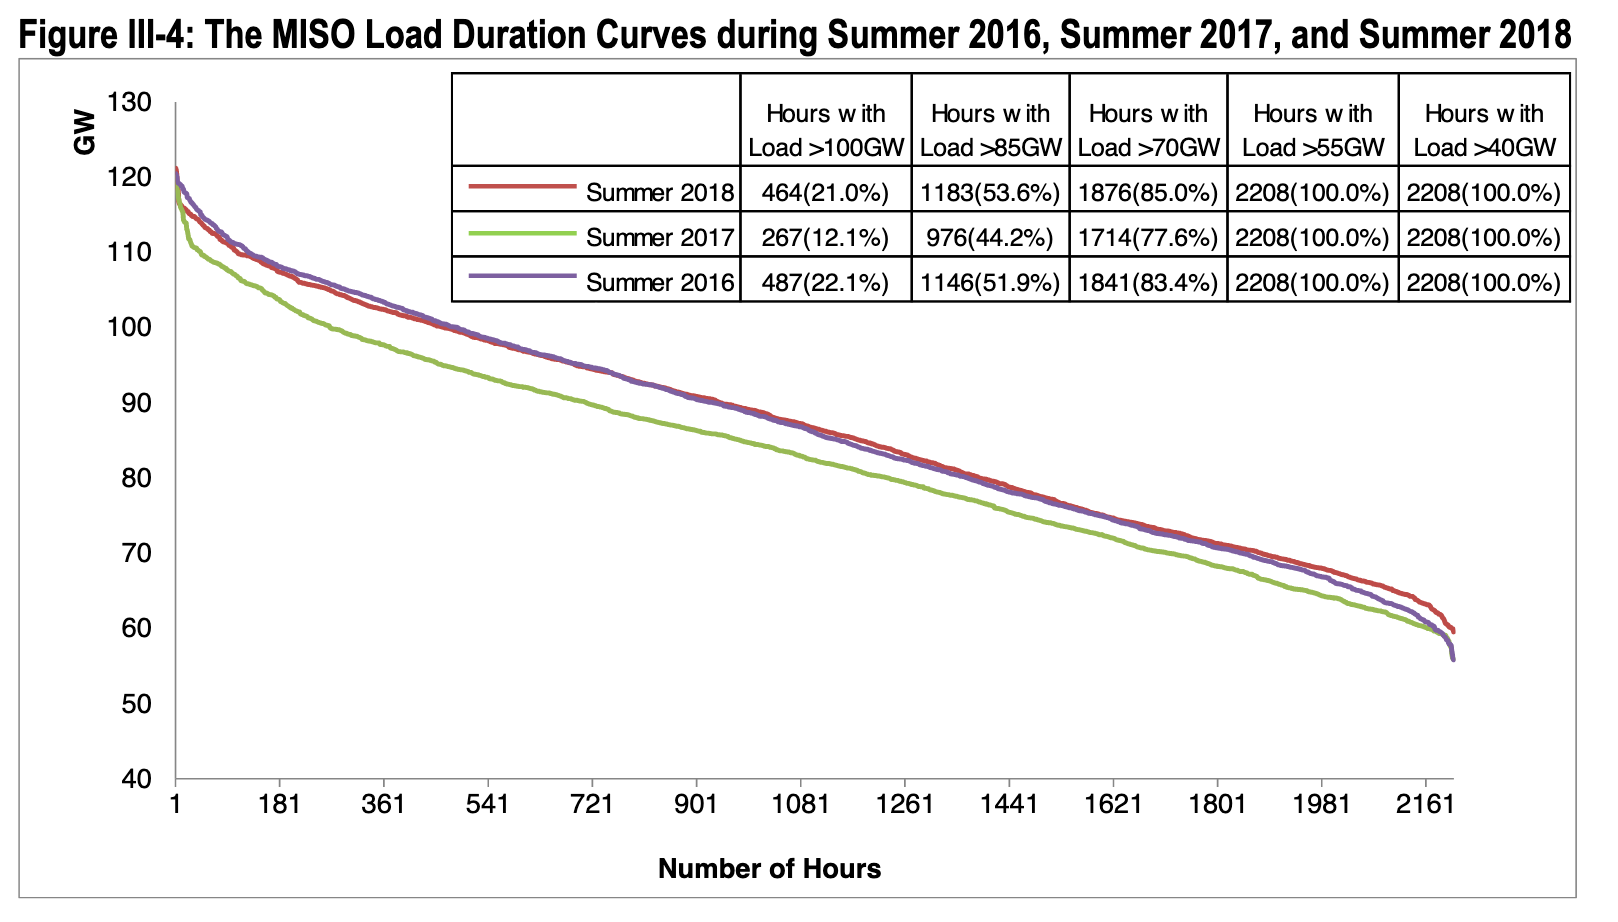 MISO Load Duration Curve